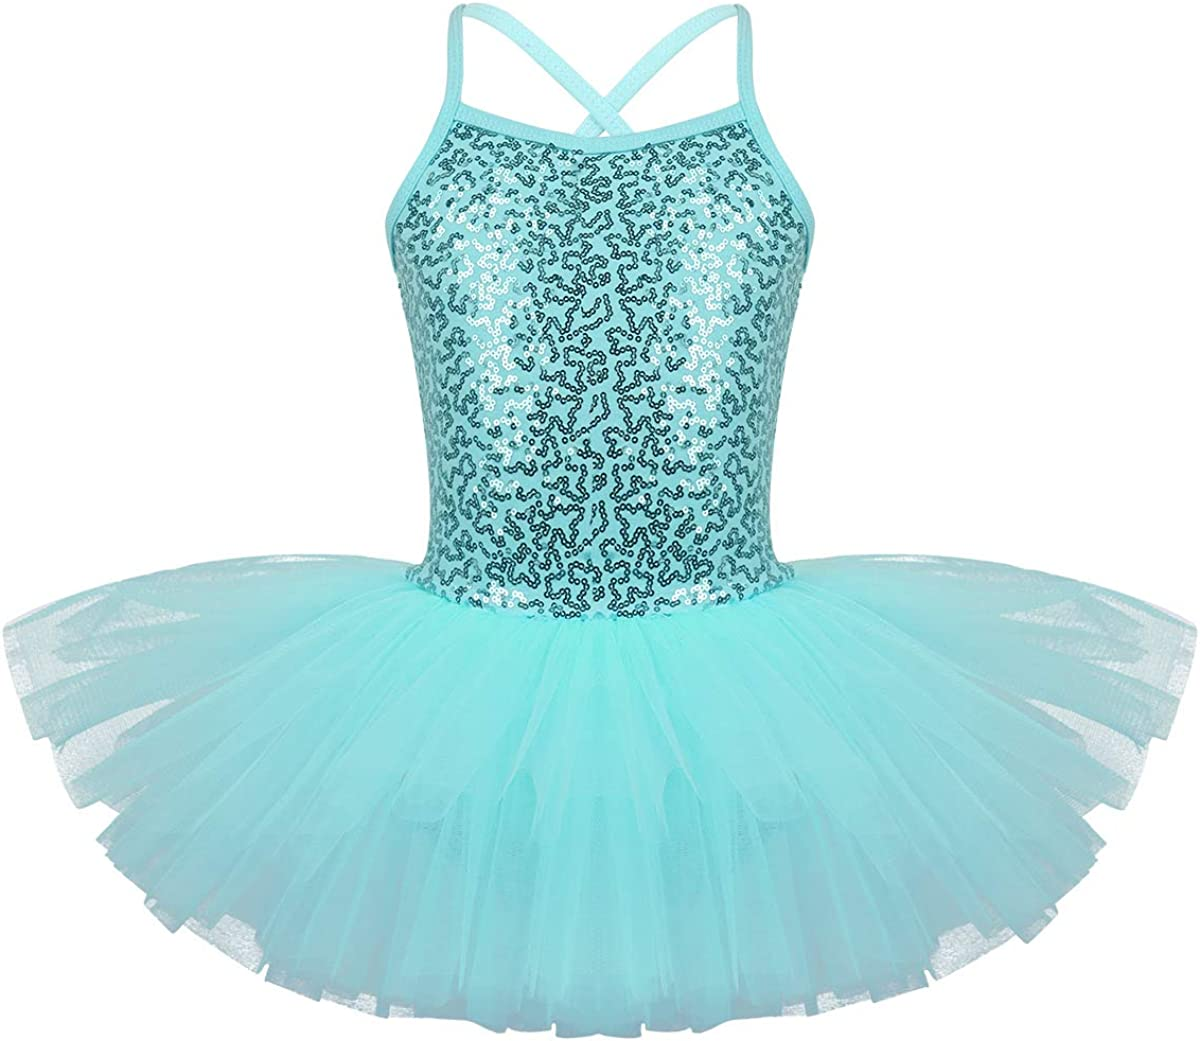 Nimiya Children Girls Two Piece Sequins Ballet Dance Gymnastic Outfits Tankini Set Criss Cross Back Top Tanks with Bottoms